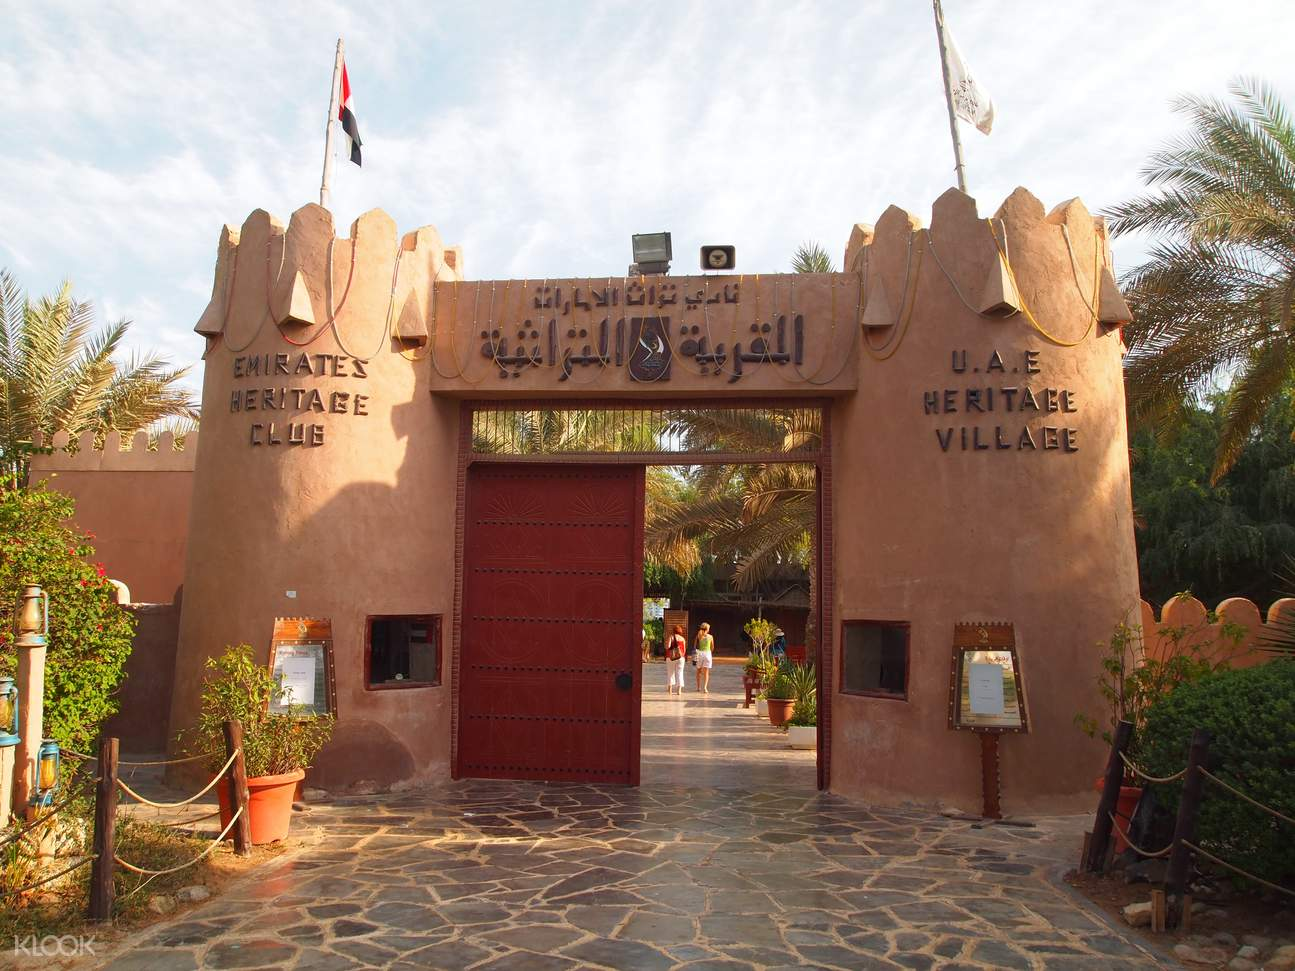 UAE Heritage Village